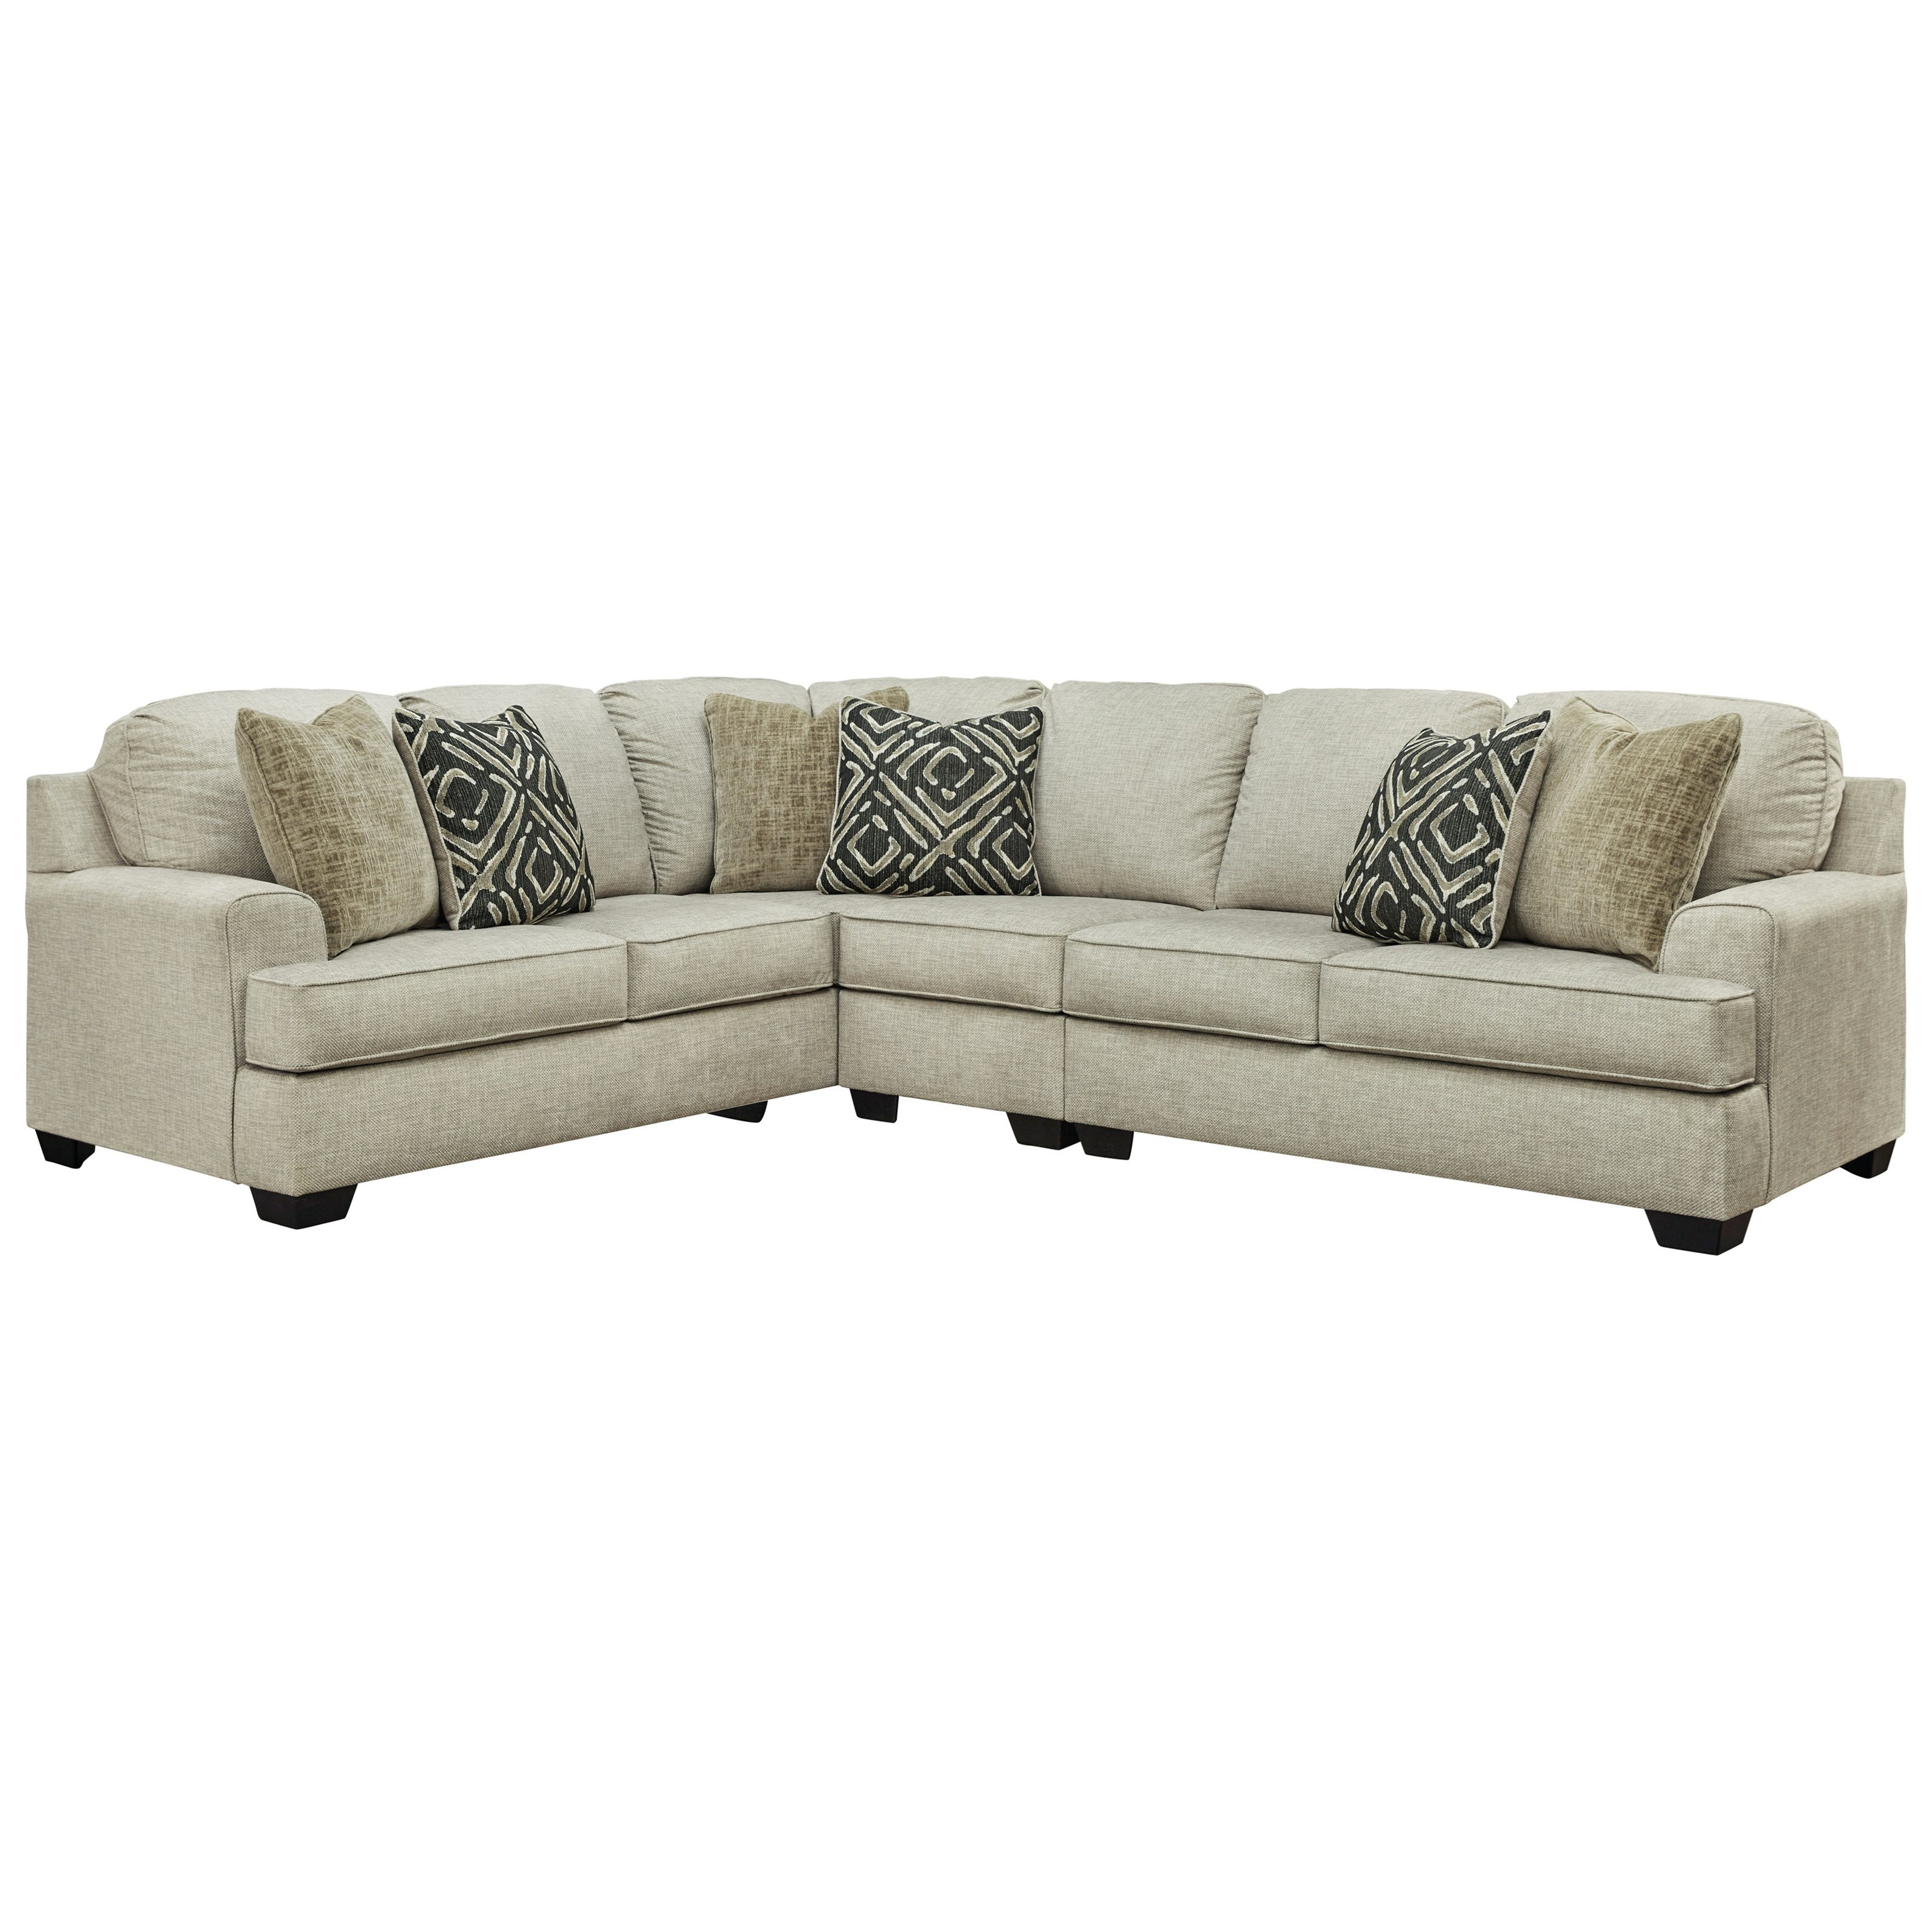 Wellhaven 3-Piece Sectional by Benchcraft at Walker's Furniture